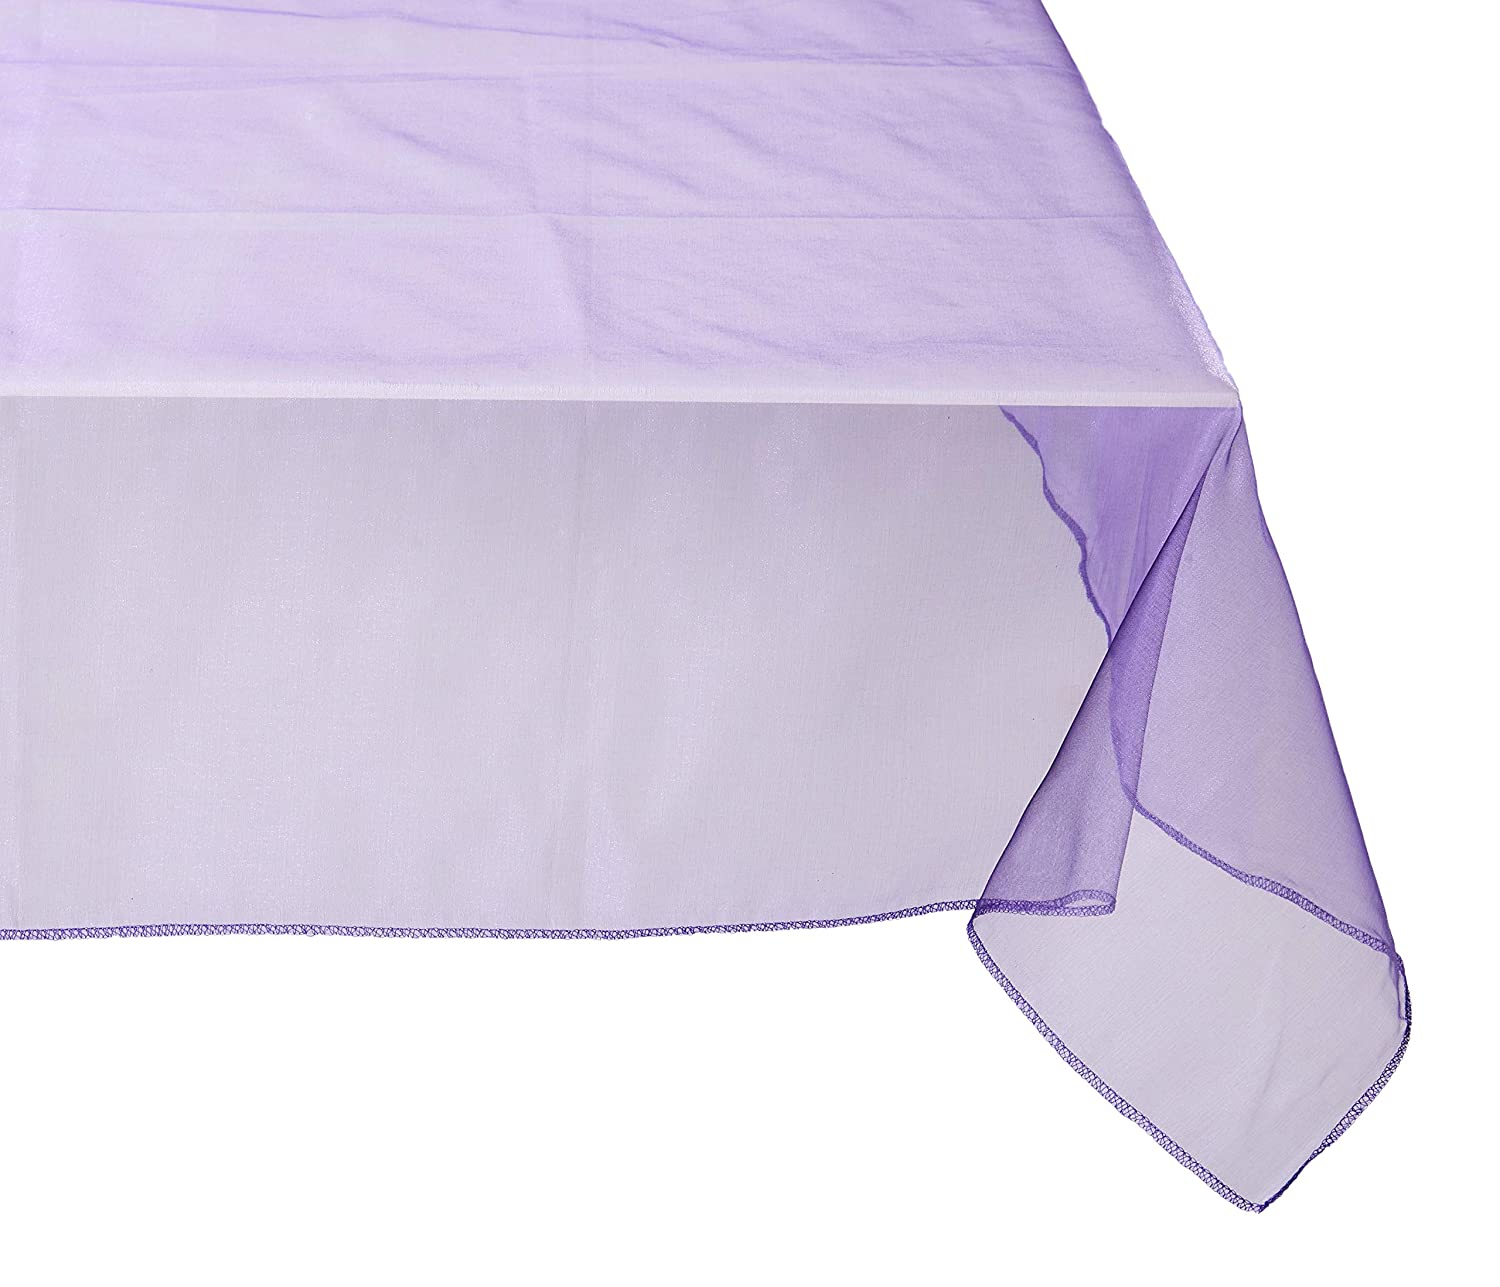 LinenTablecloth 72-Inch Square Organza Overlay White 72OVR-080101